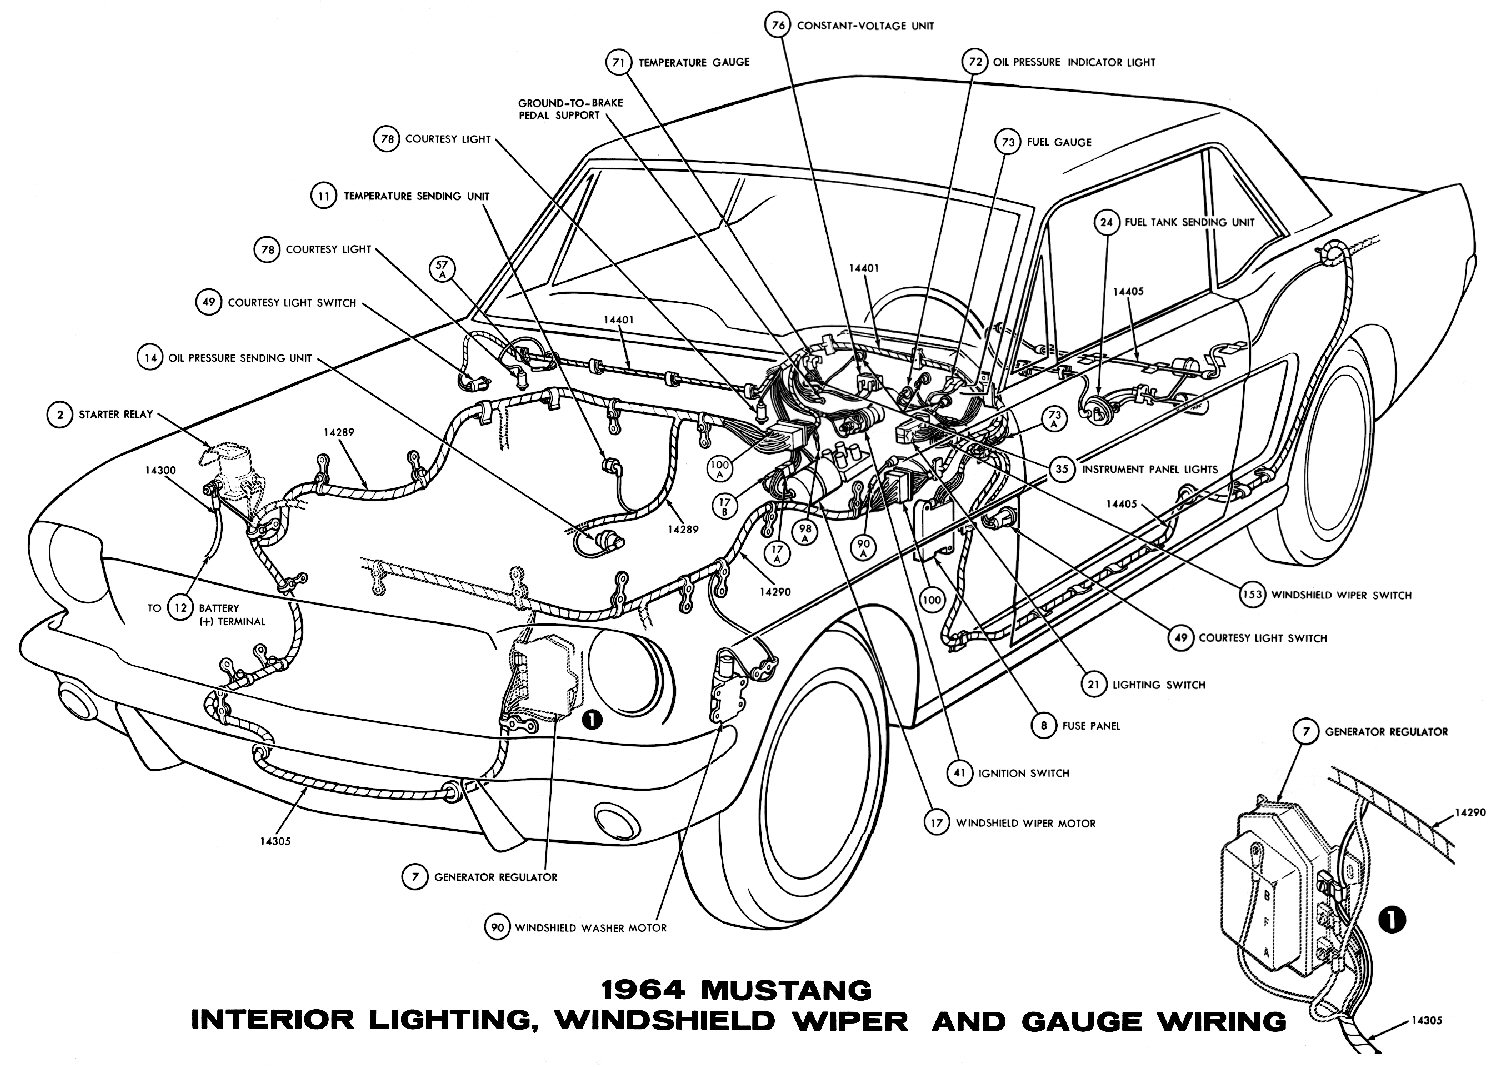 71 Mustang Wiring Diagram Library Peugeot 206 Interior Fuse Box Cover 1964 Lights Windshield Wiper And Gauges Pictorial Or Schematic